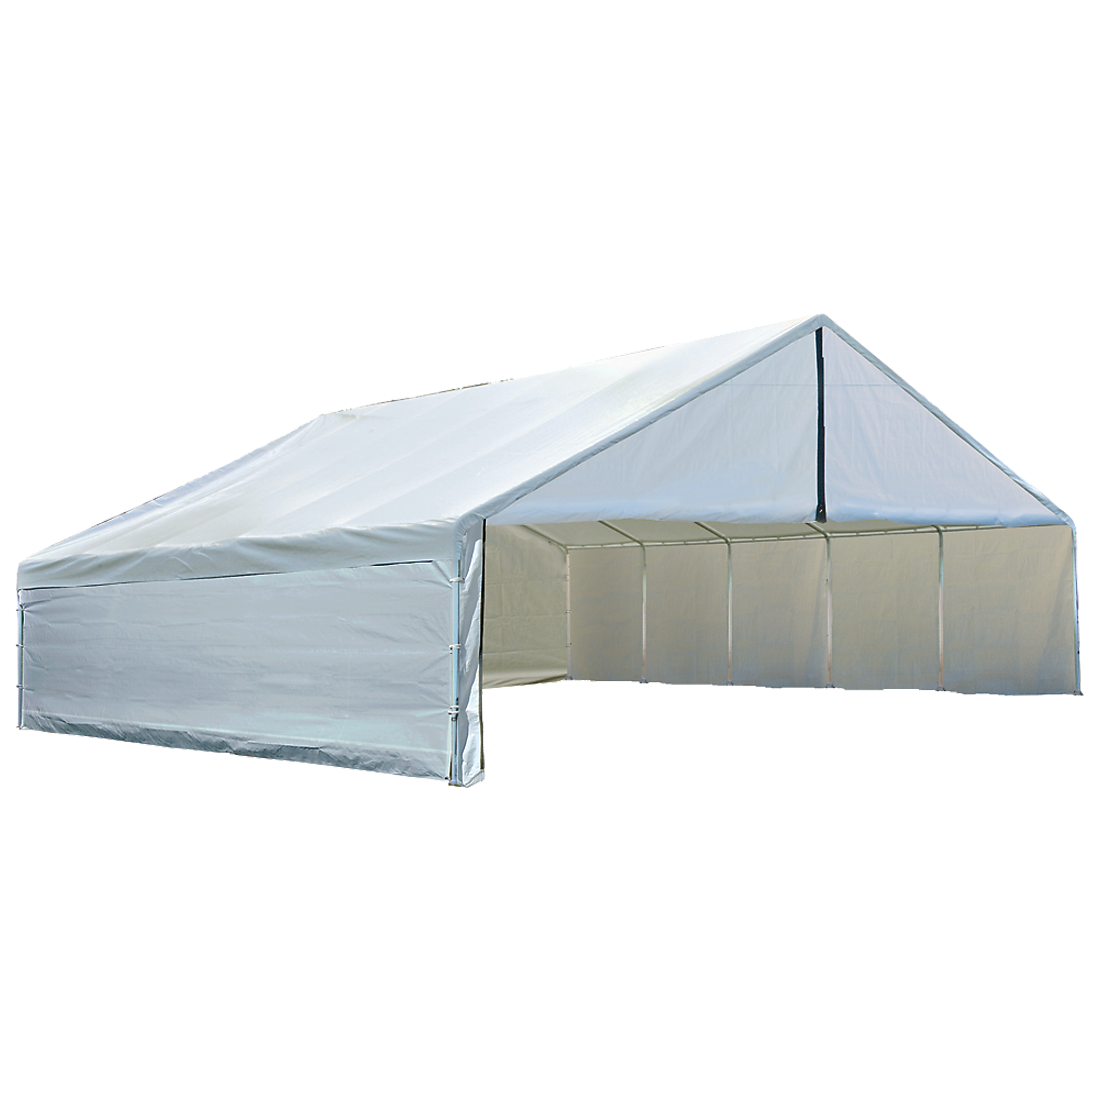 Enclosure Kit - Ultra Max Canopy 24 x 50 ft.